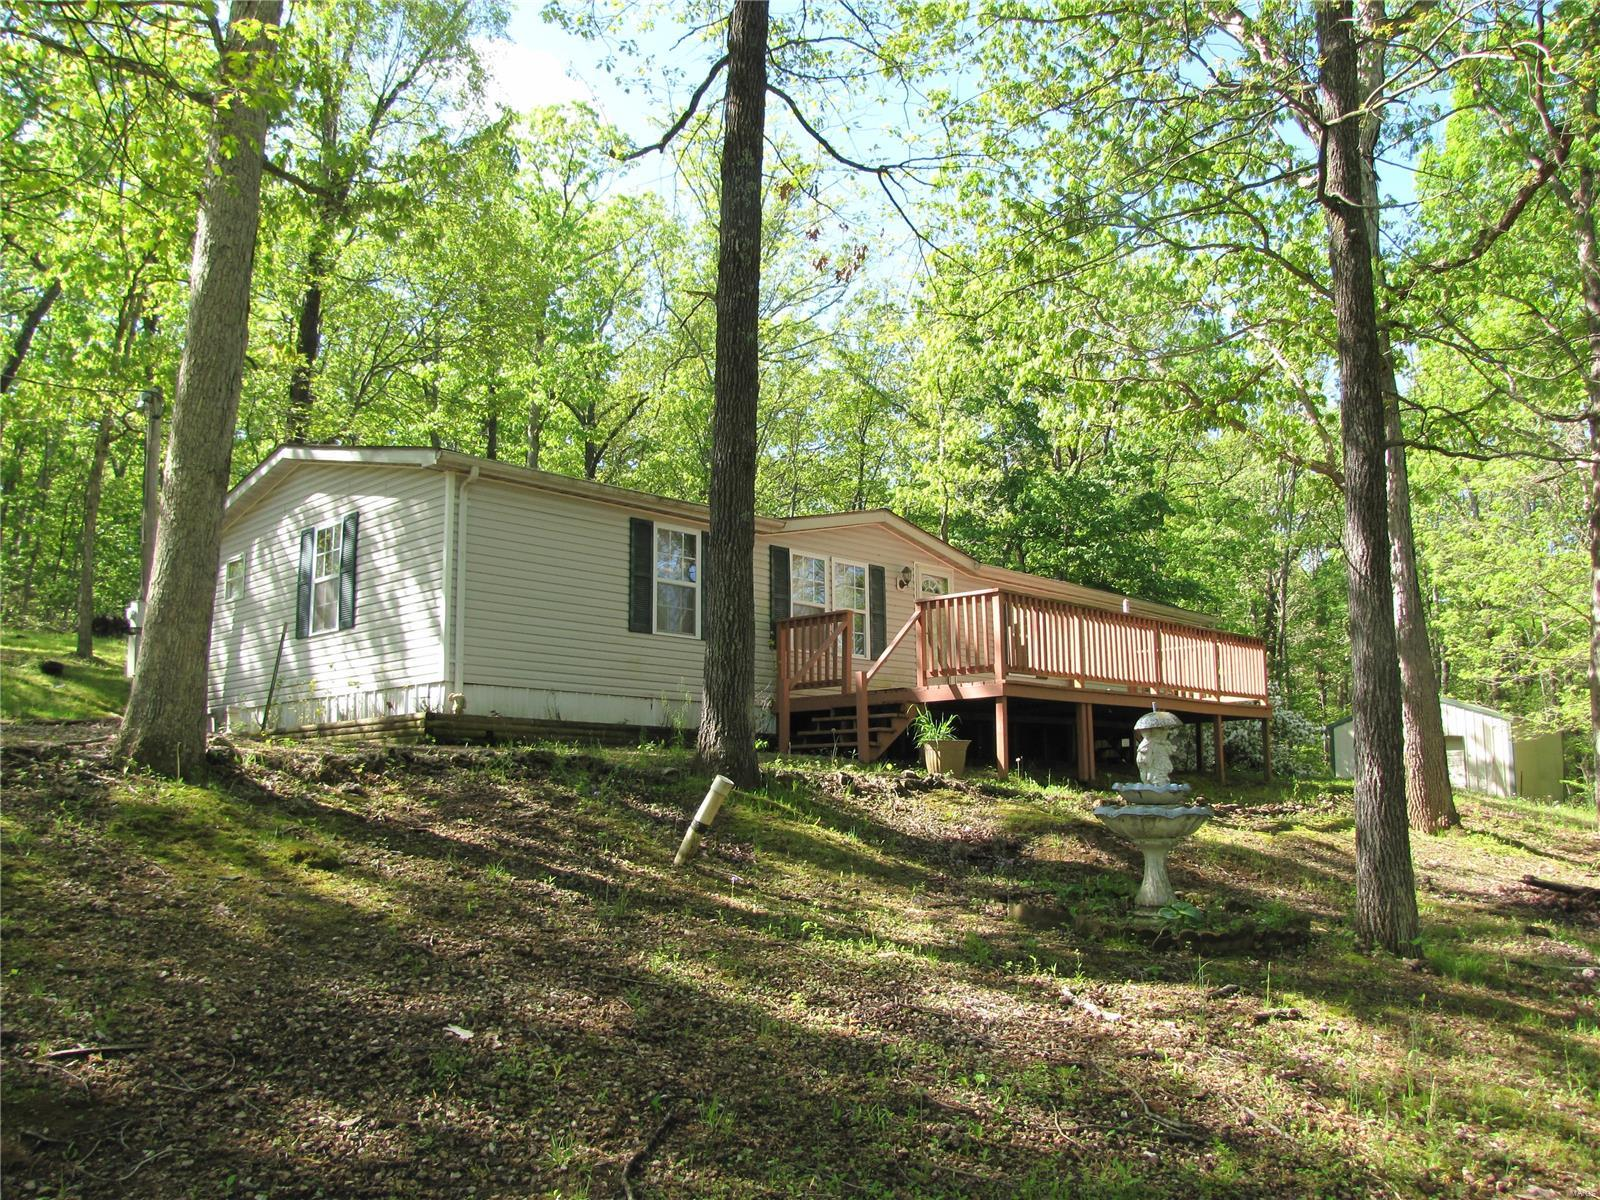 10058 Thurman Oaks Rd Property Photo - Valles Mines, MO real estate listing